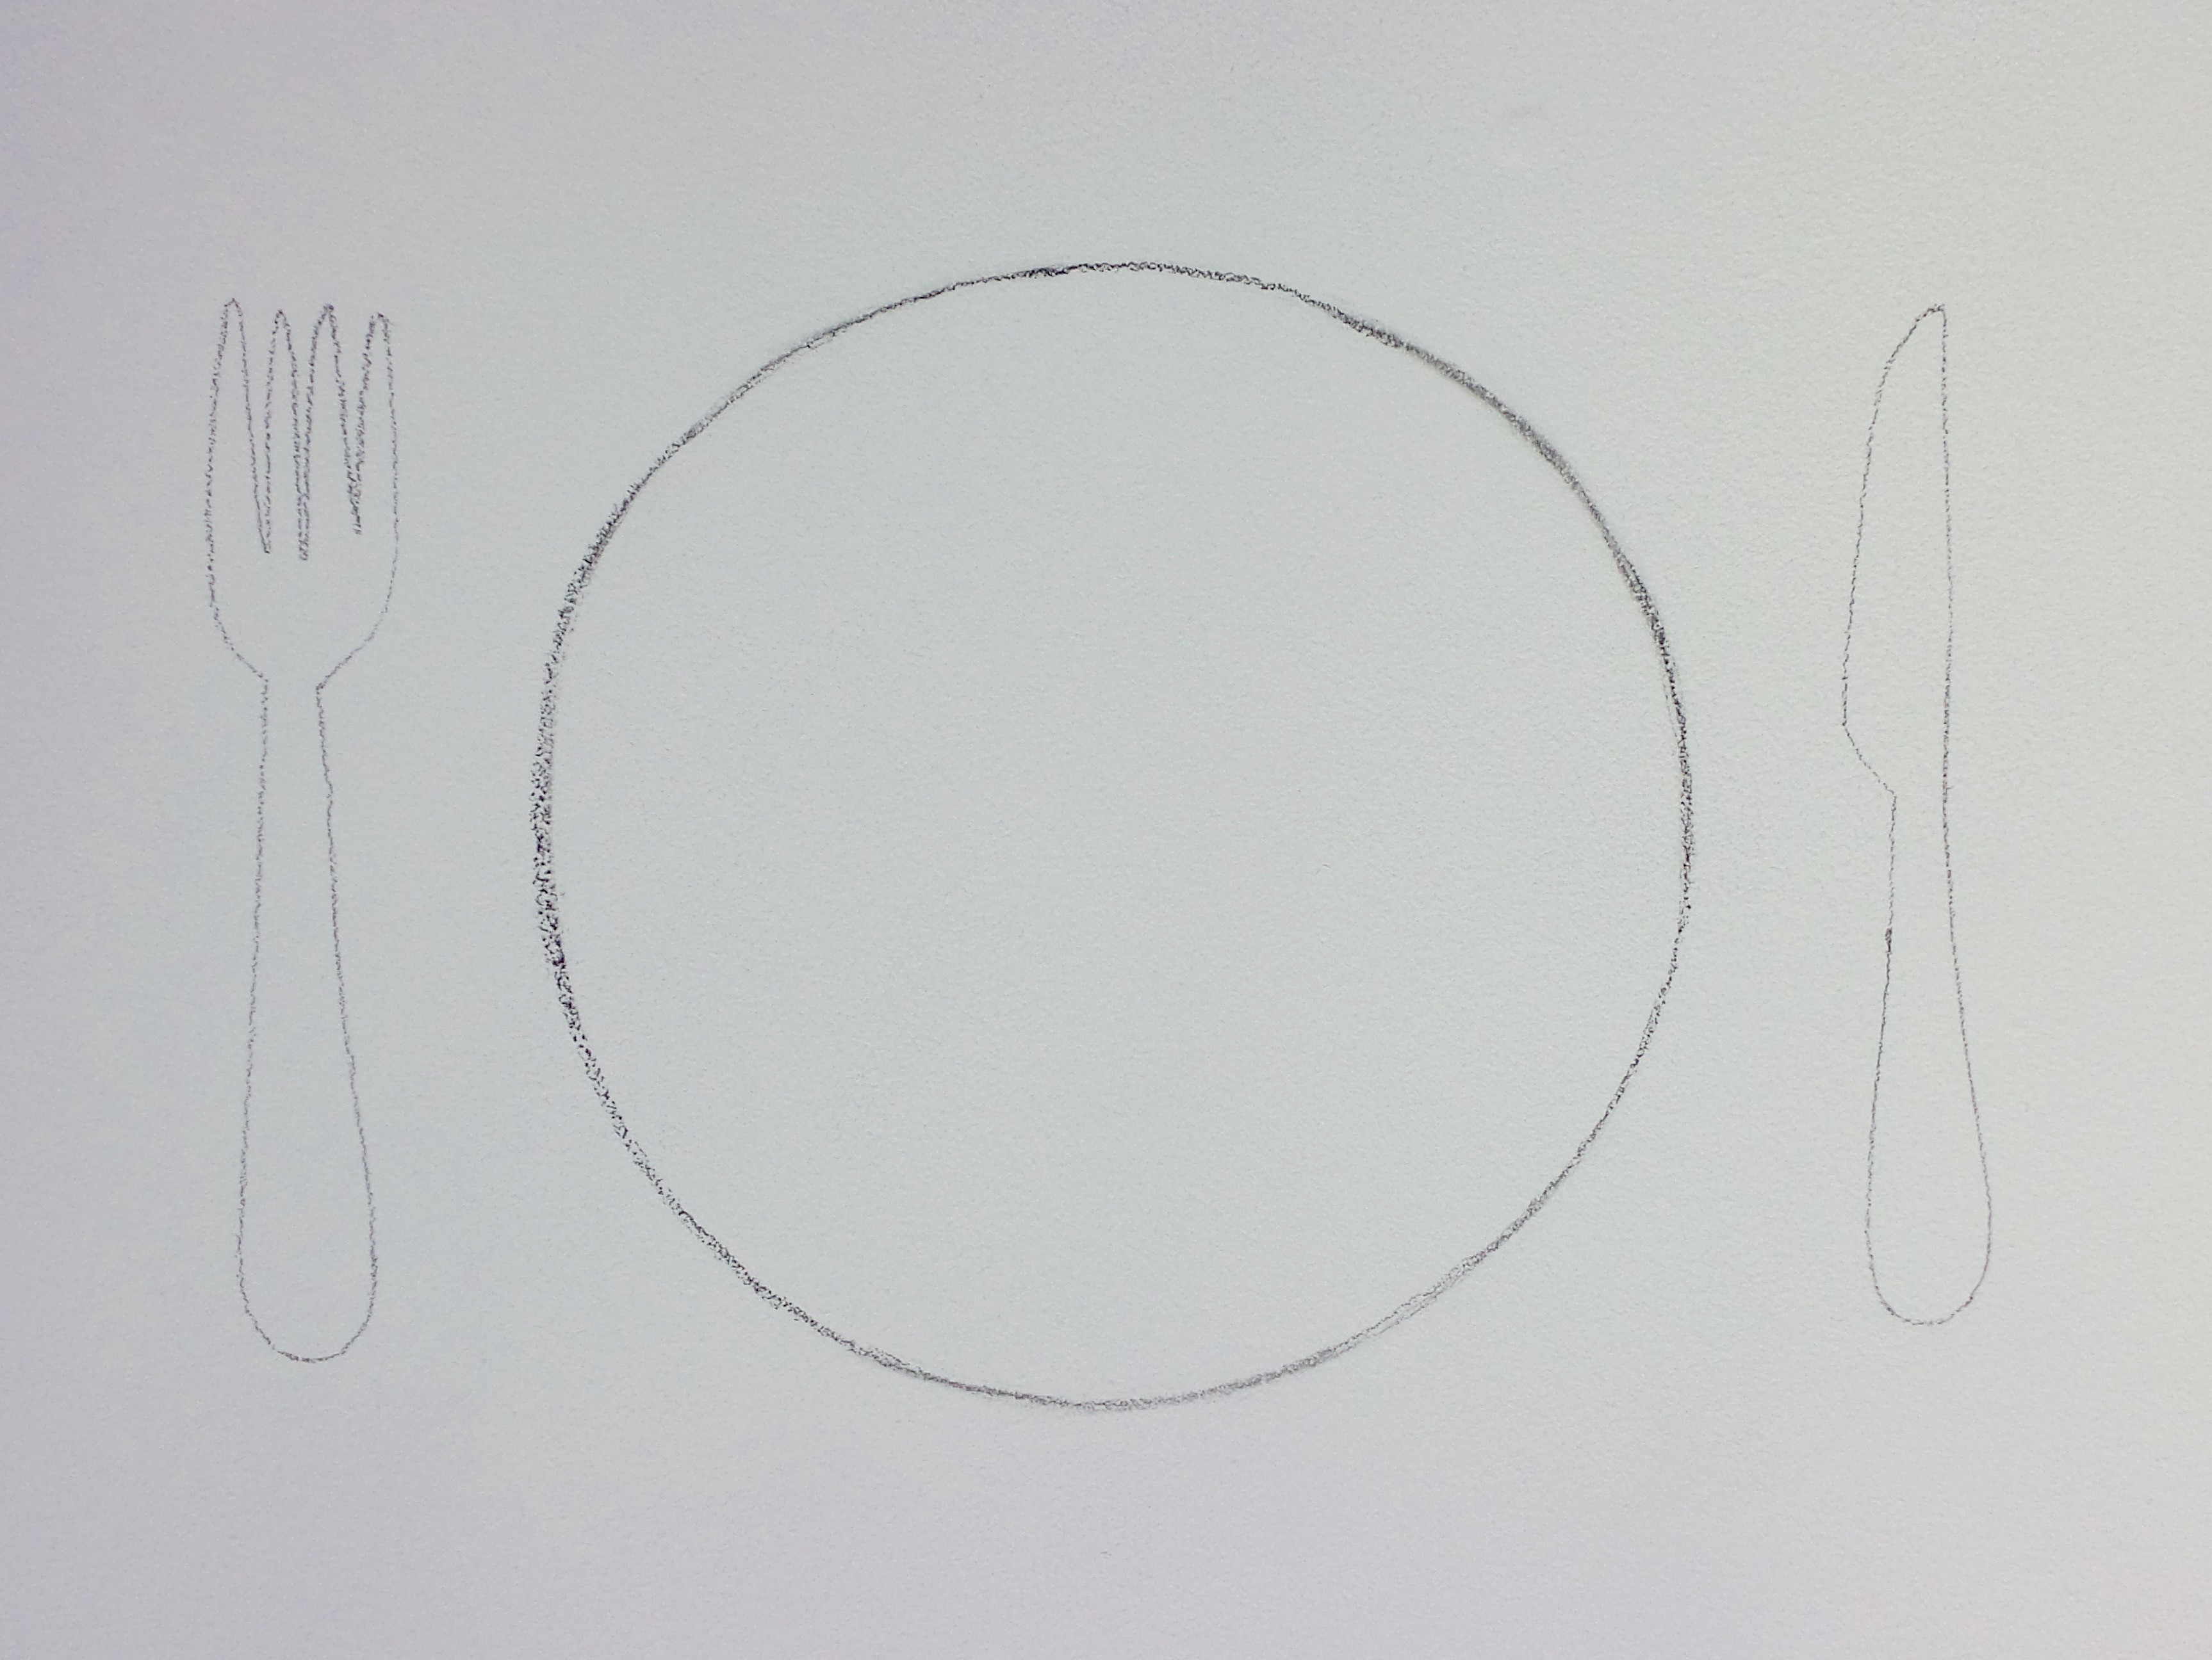 labyrinth lunch plate series - the unexpected guest | pencil drawing | 21 cm diameter